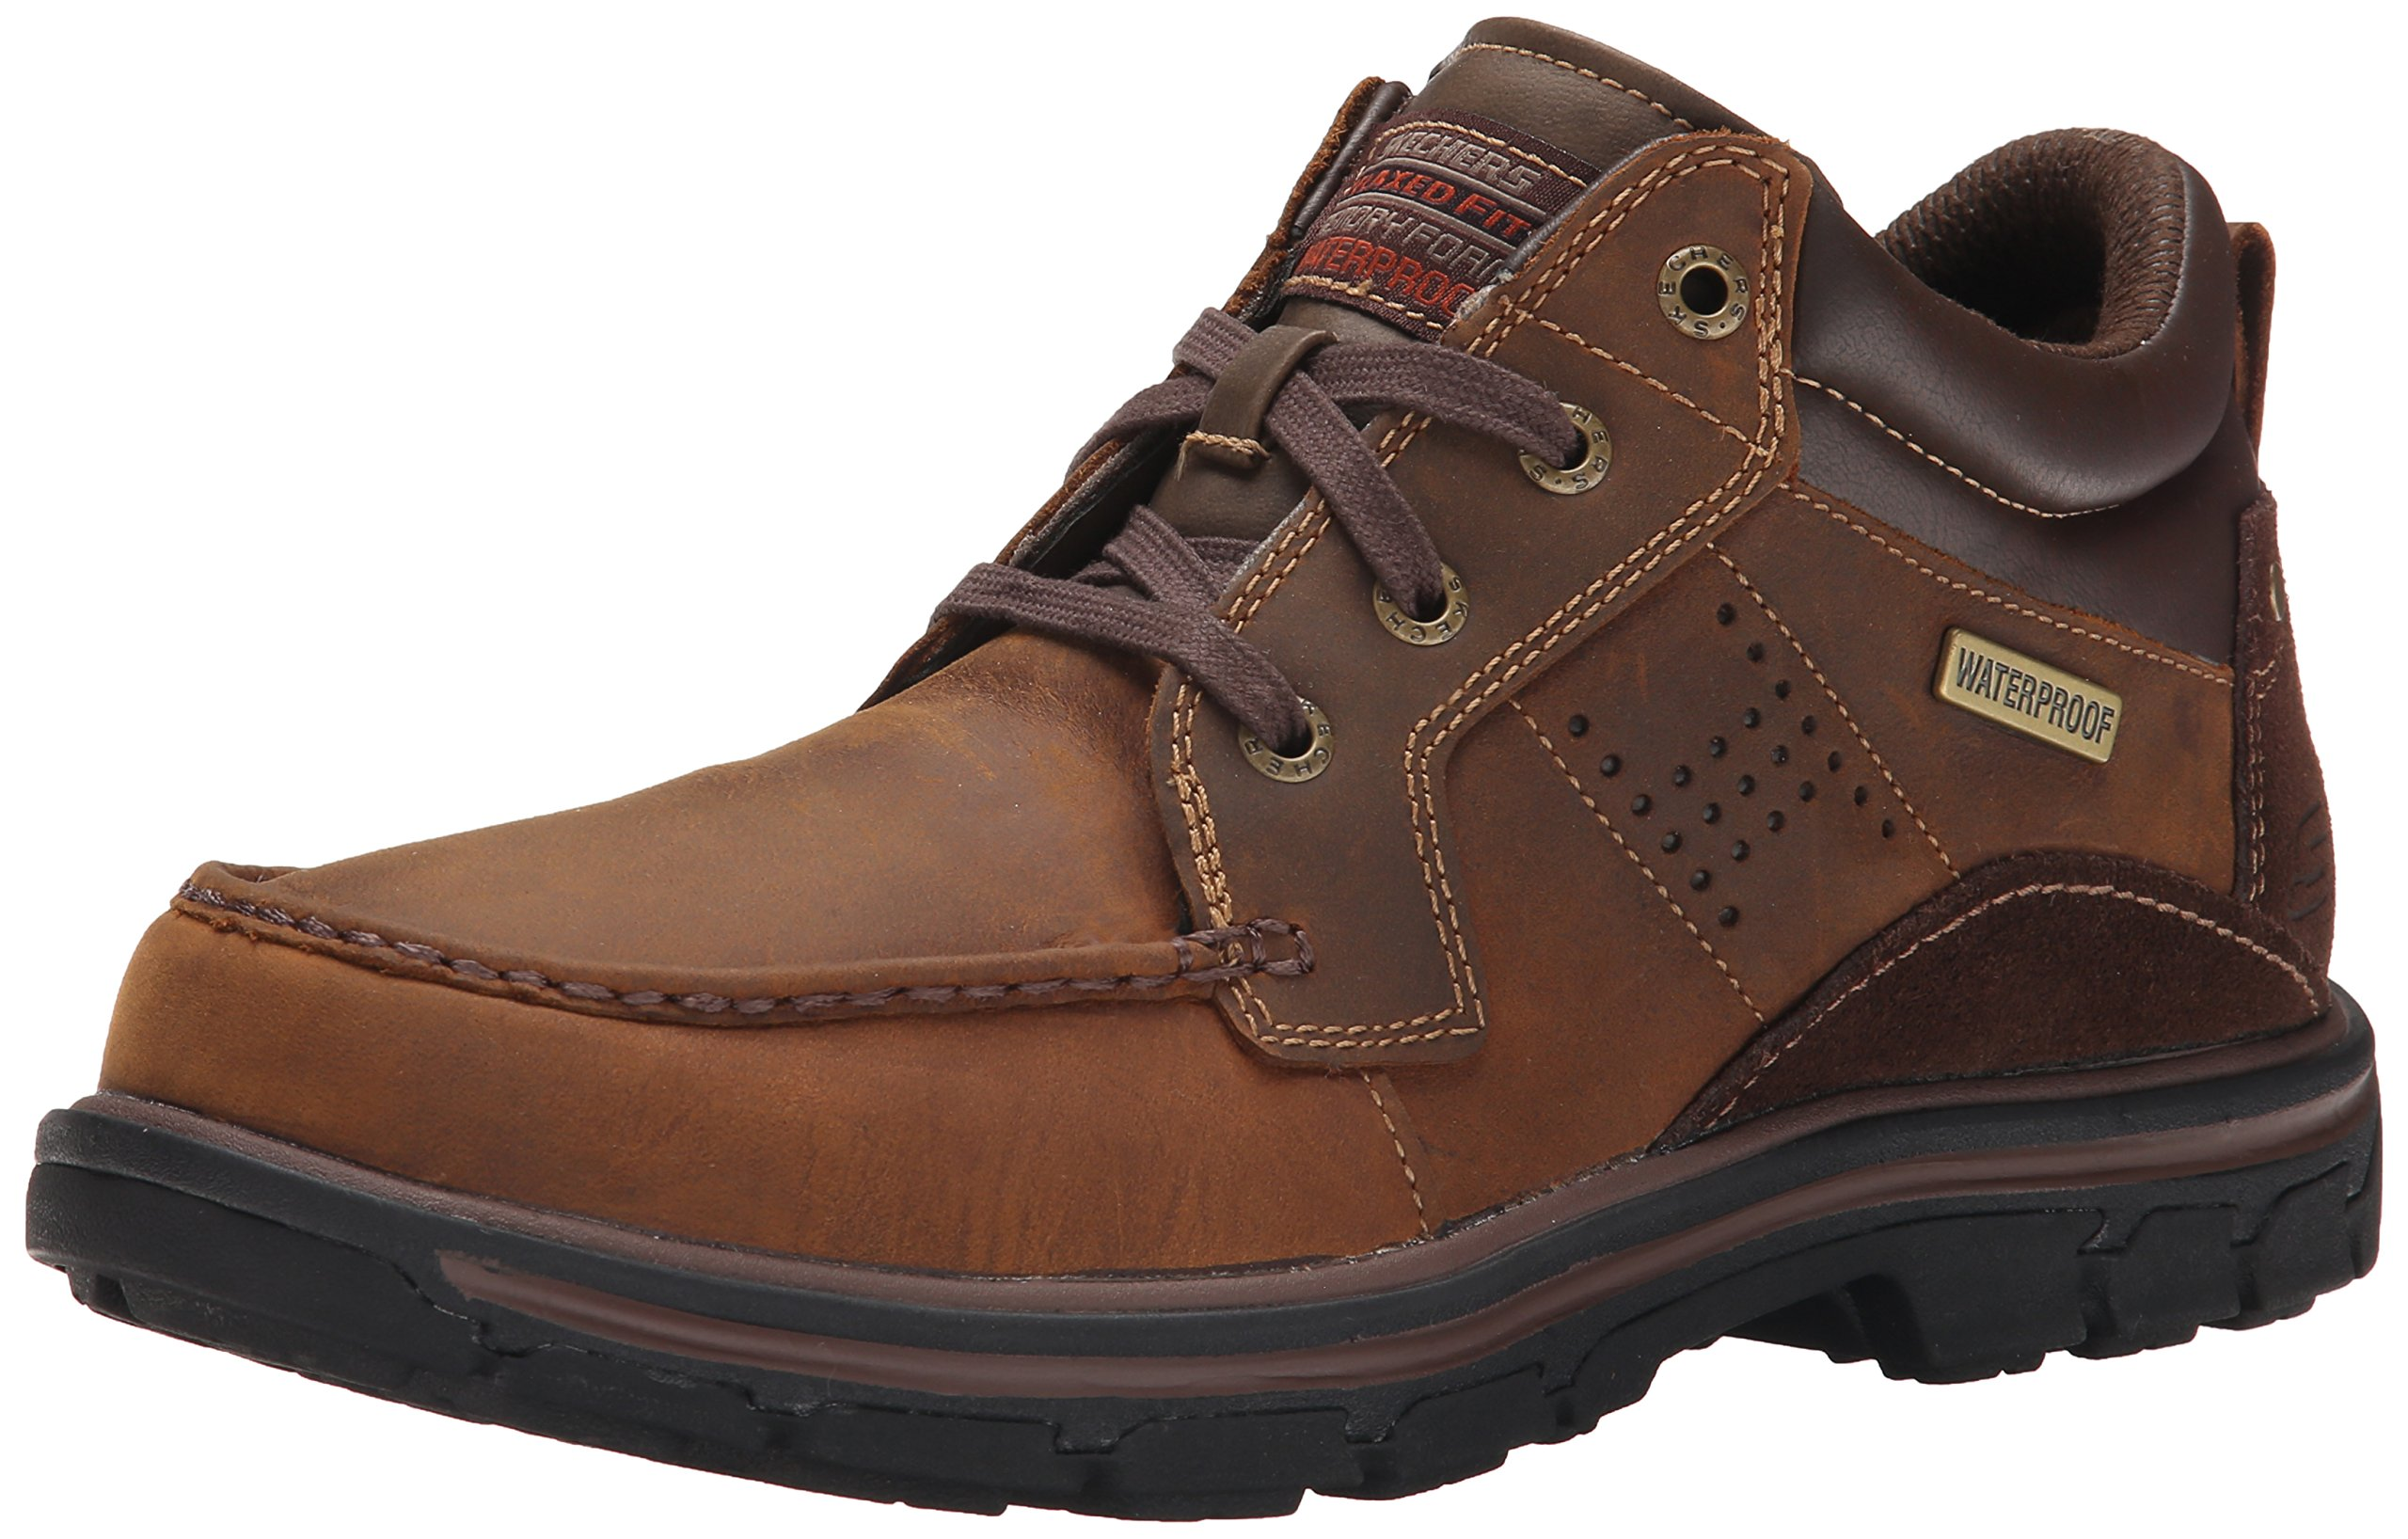 Skechers USA Men's Segment Melego Ankle Bootie,Dark Brown,10 2W US